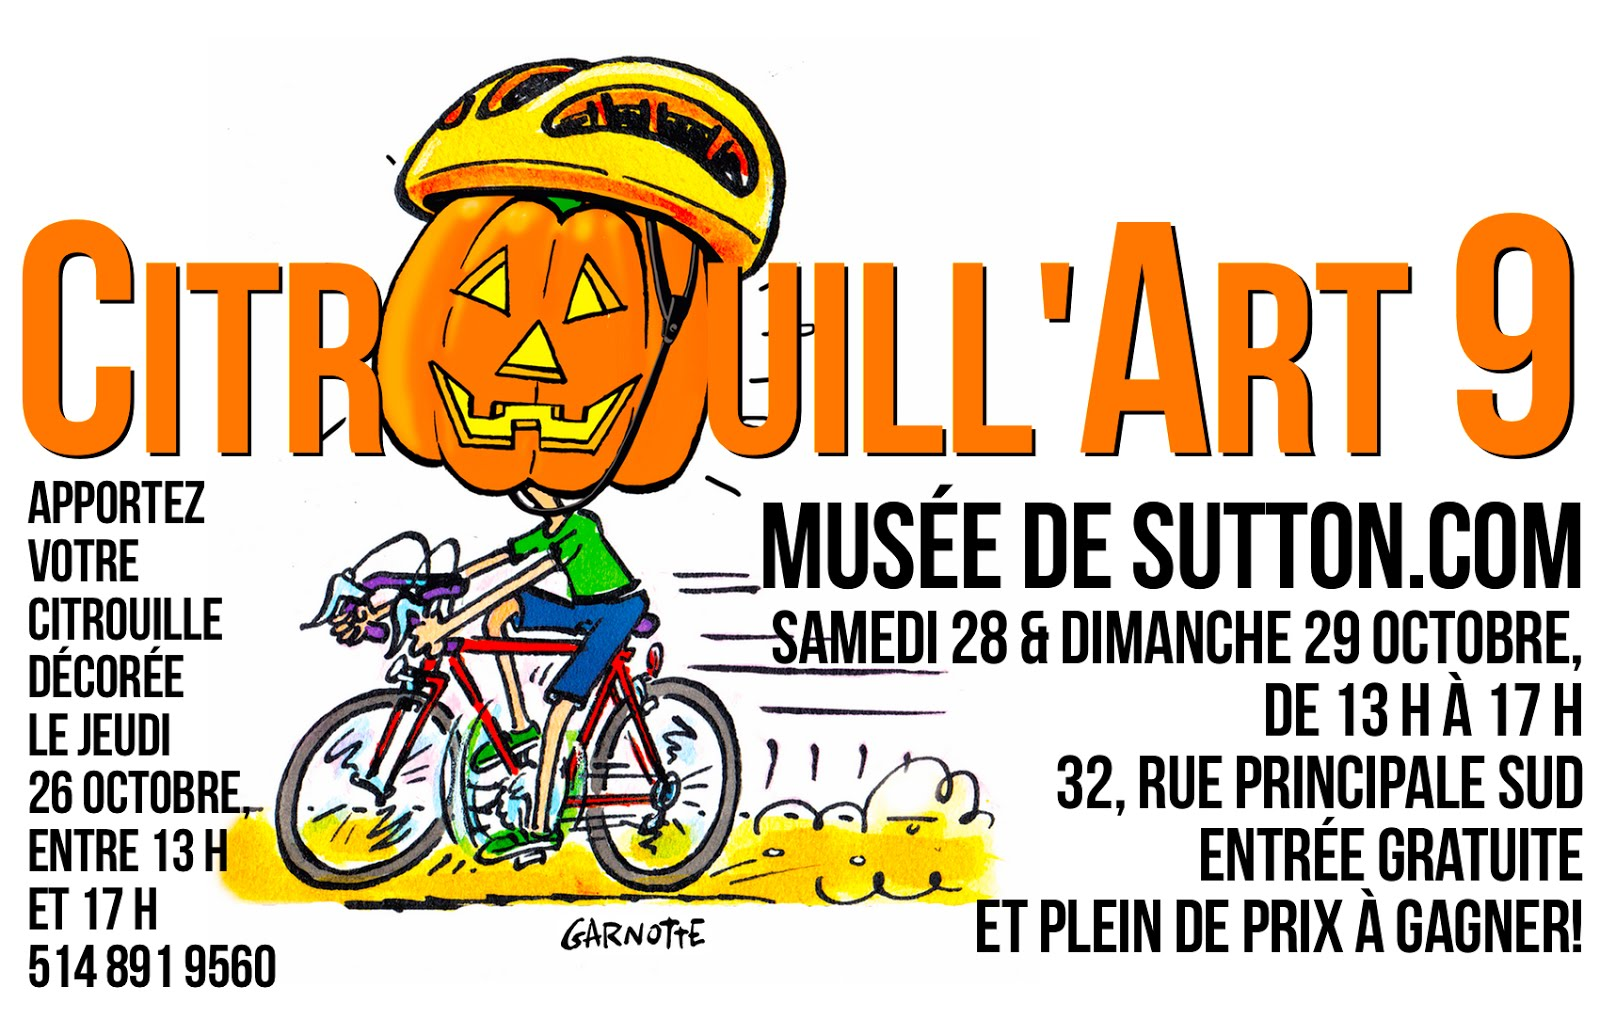 Gagnants de Citrouill'Art 9